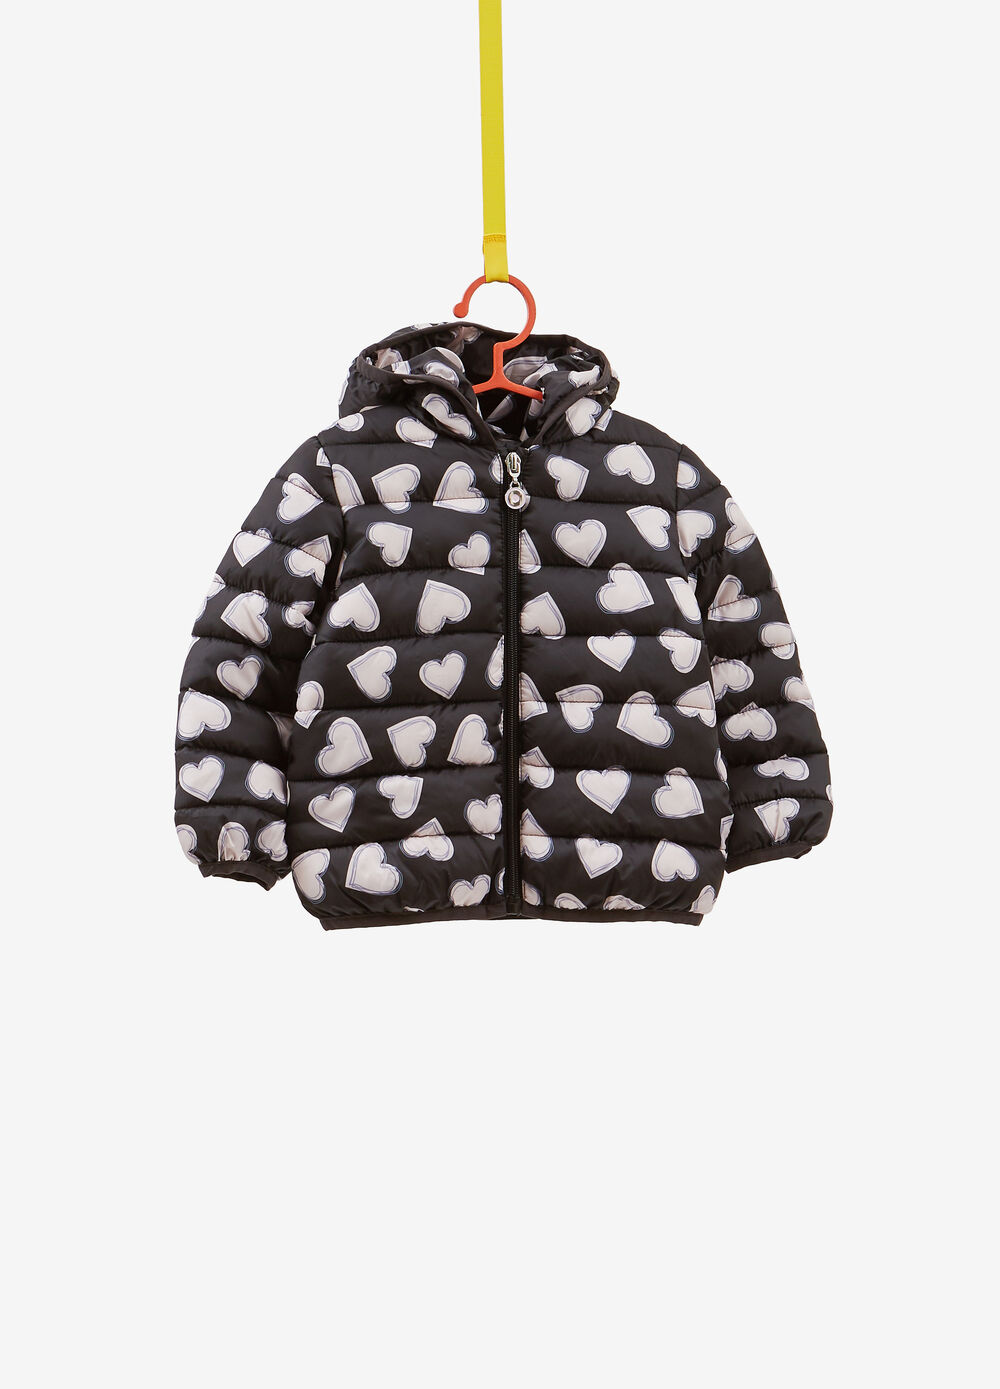 Quilted jacket with heart pattern